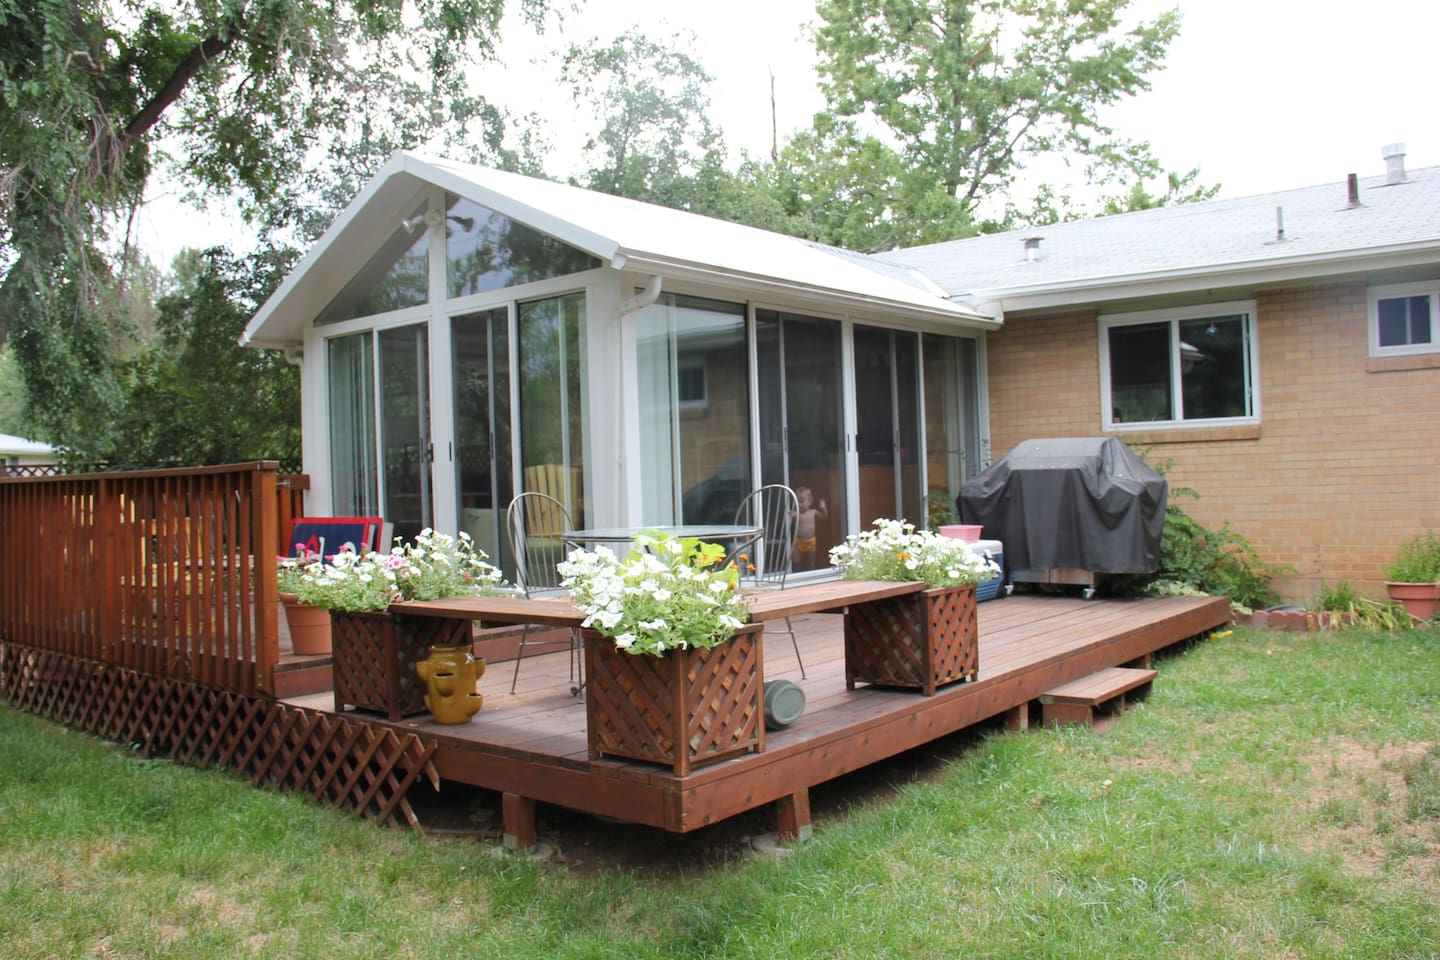 Our sunroom and deck with plenty of outside seating and a gas grill